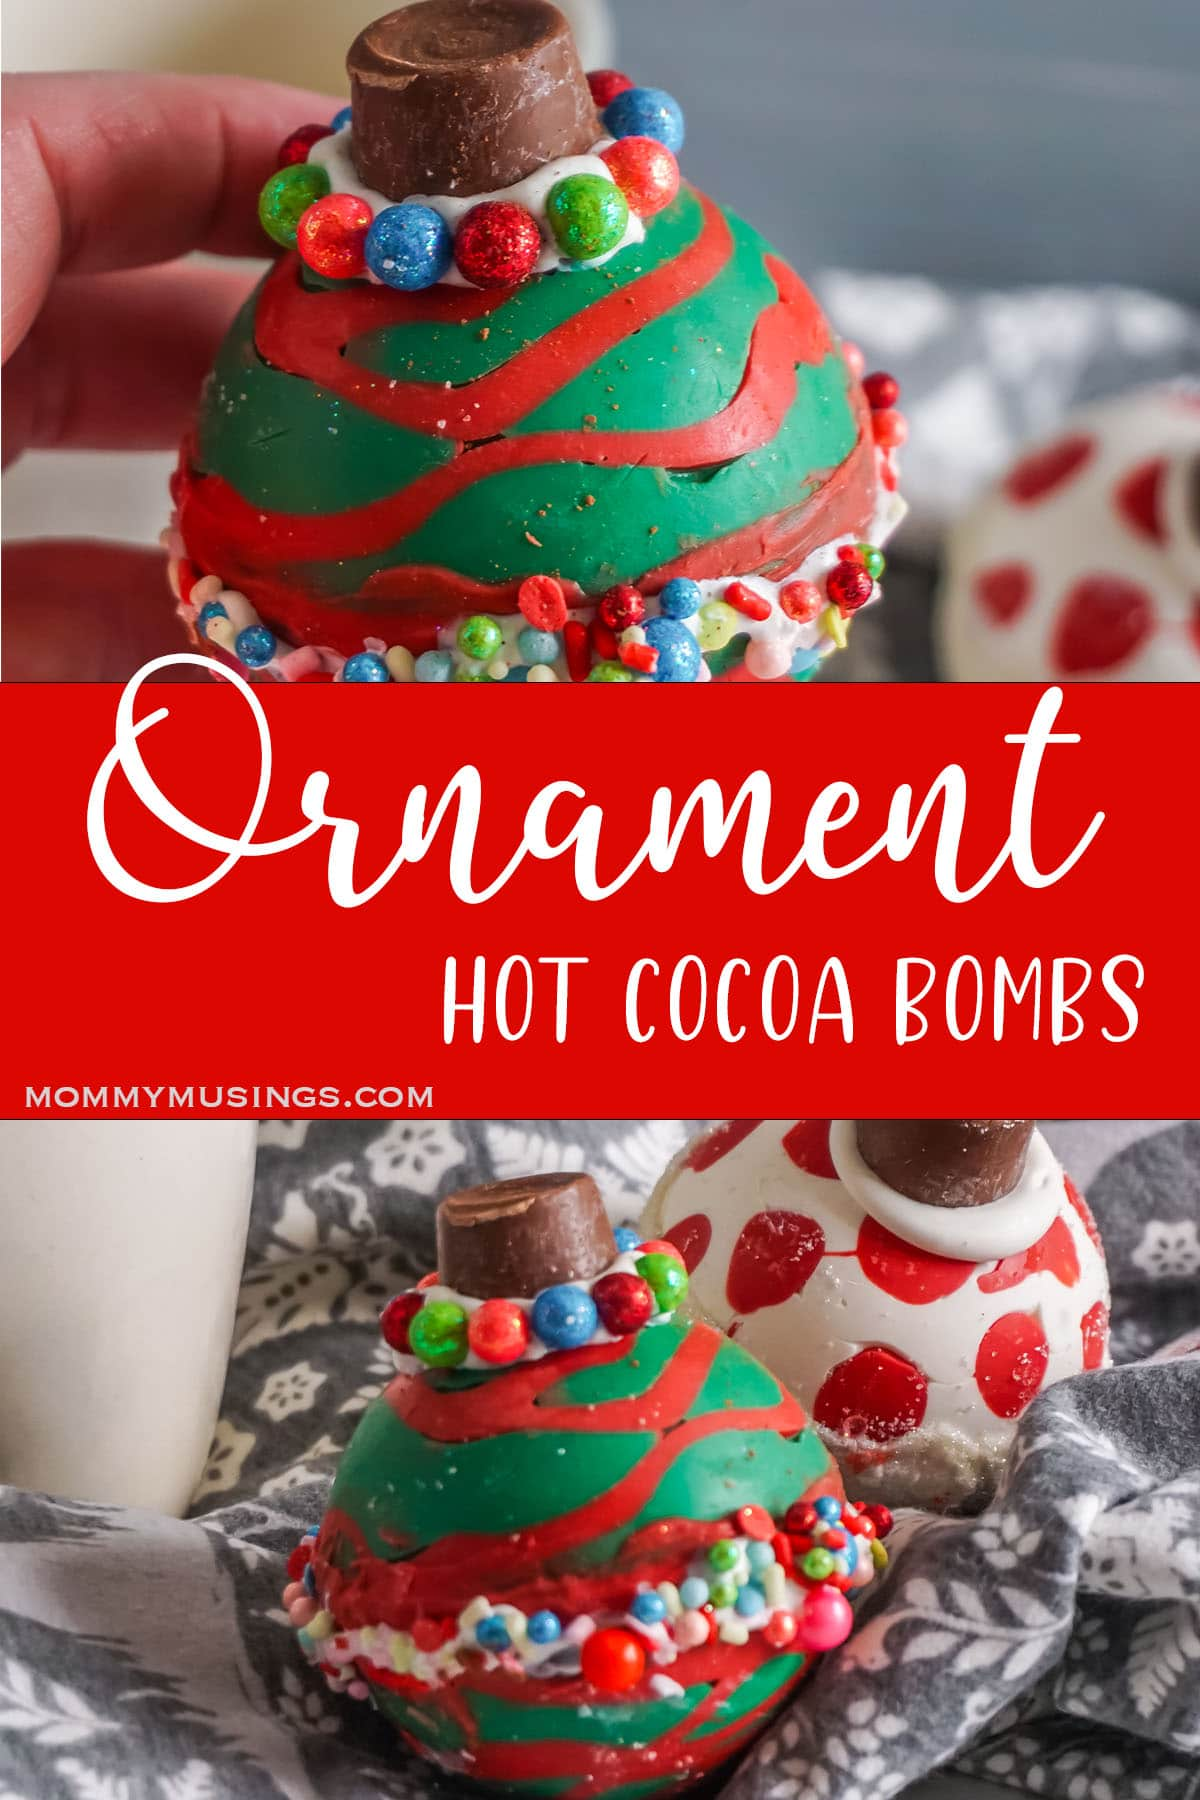 photo collage of holiday ornament hot cocoa bombs with text which reads Ornament Hot cocoa bombs